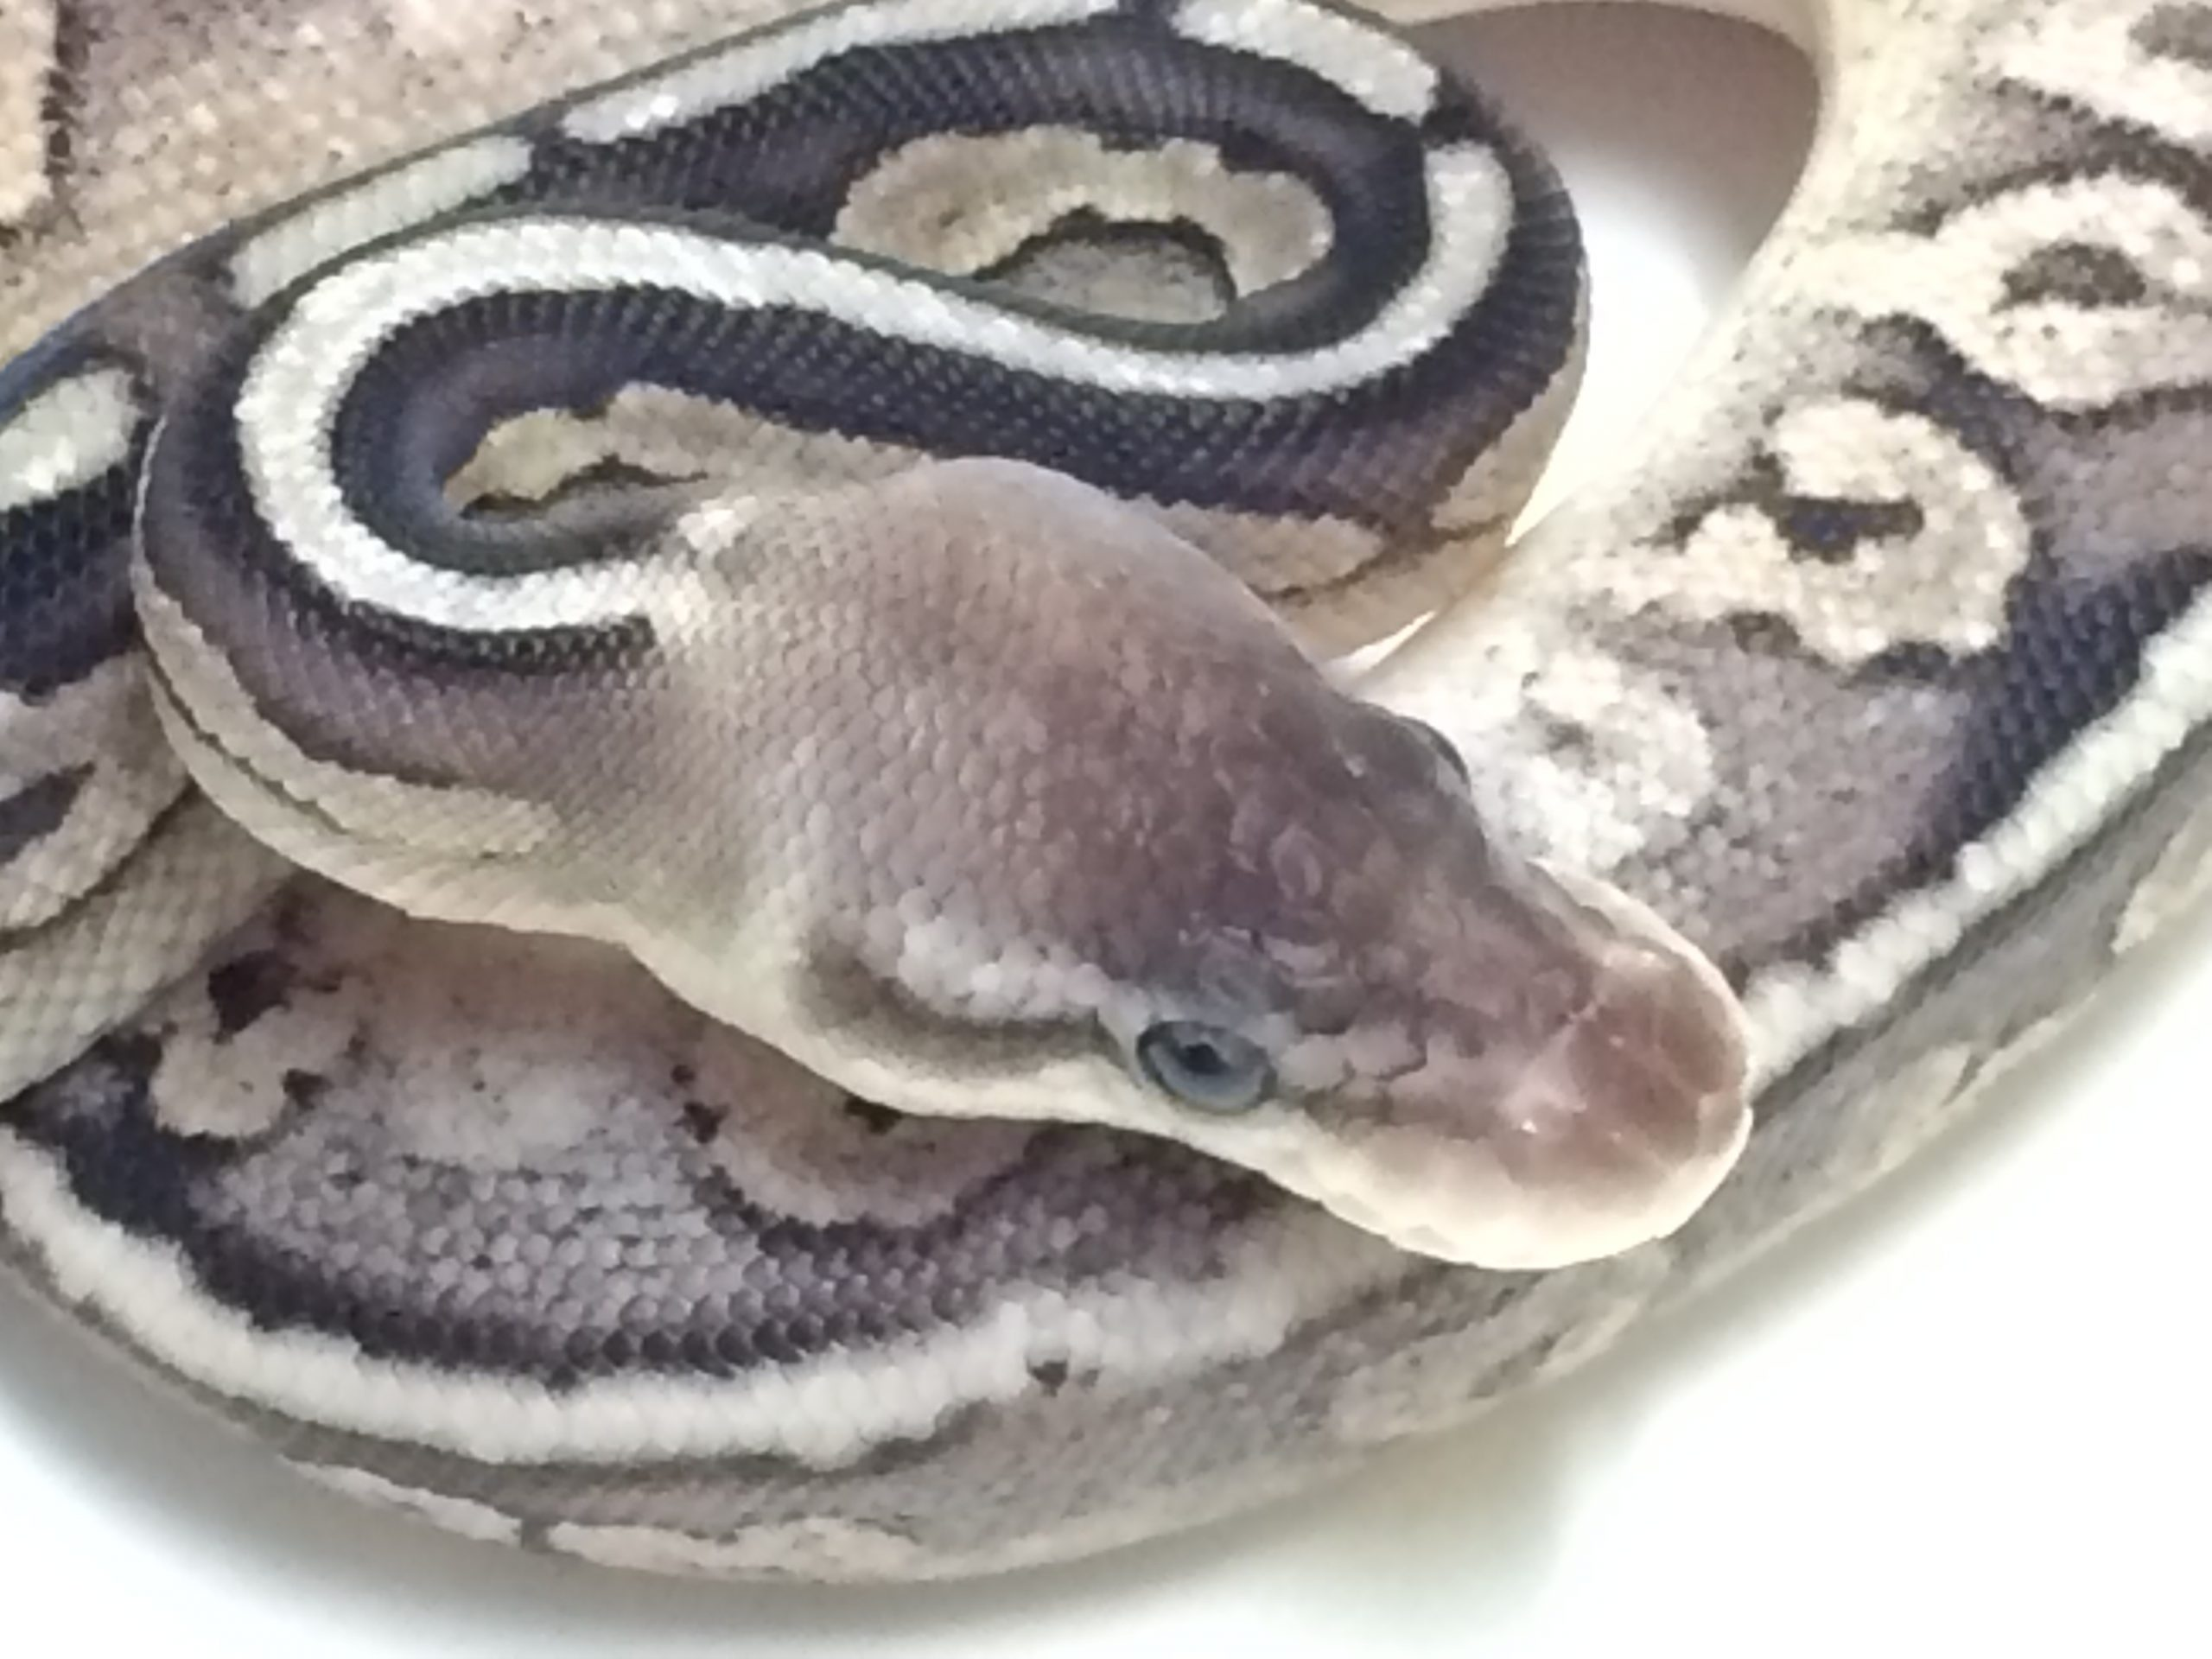 Pewter Ball Python for sale